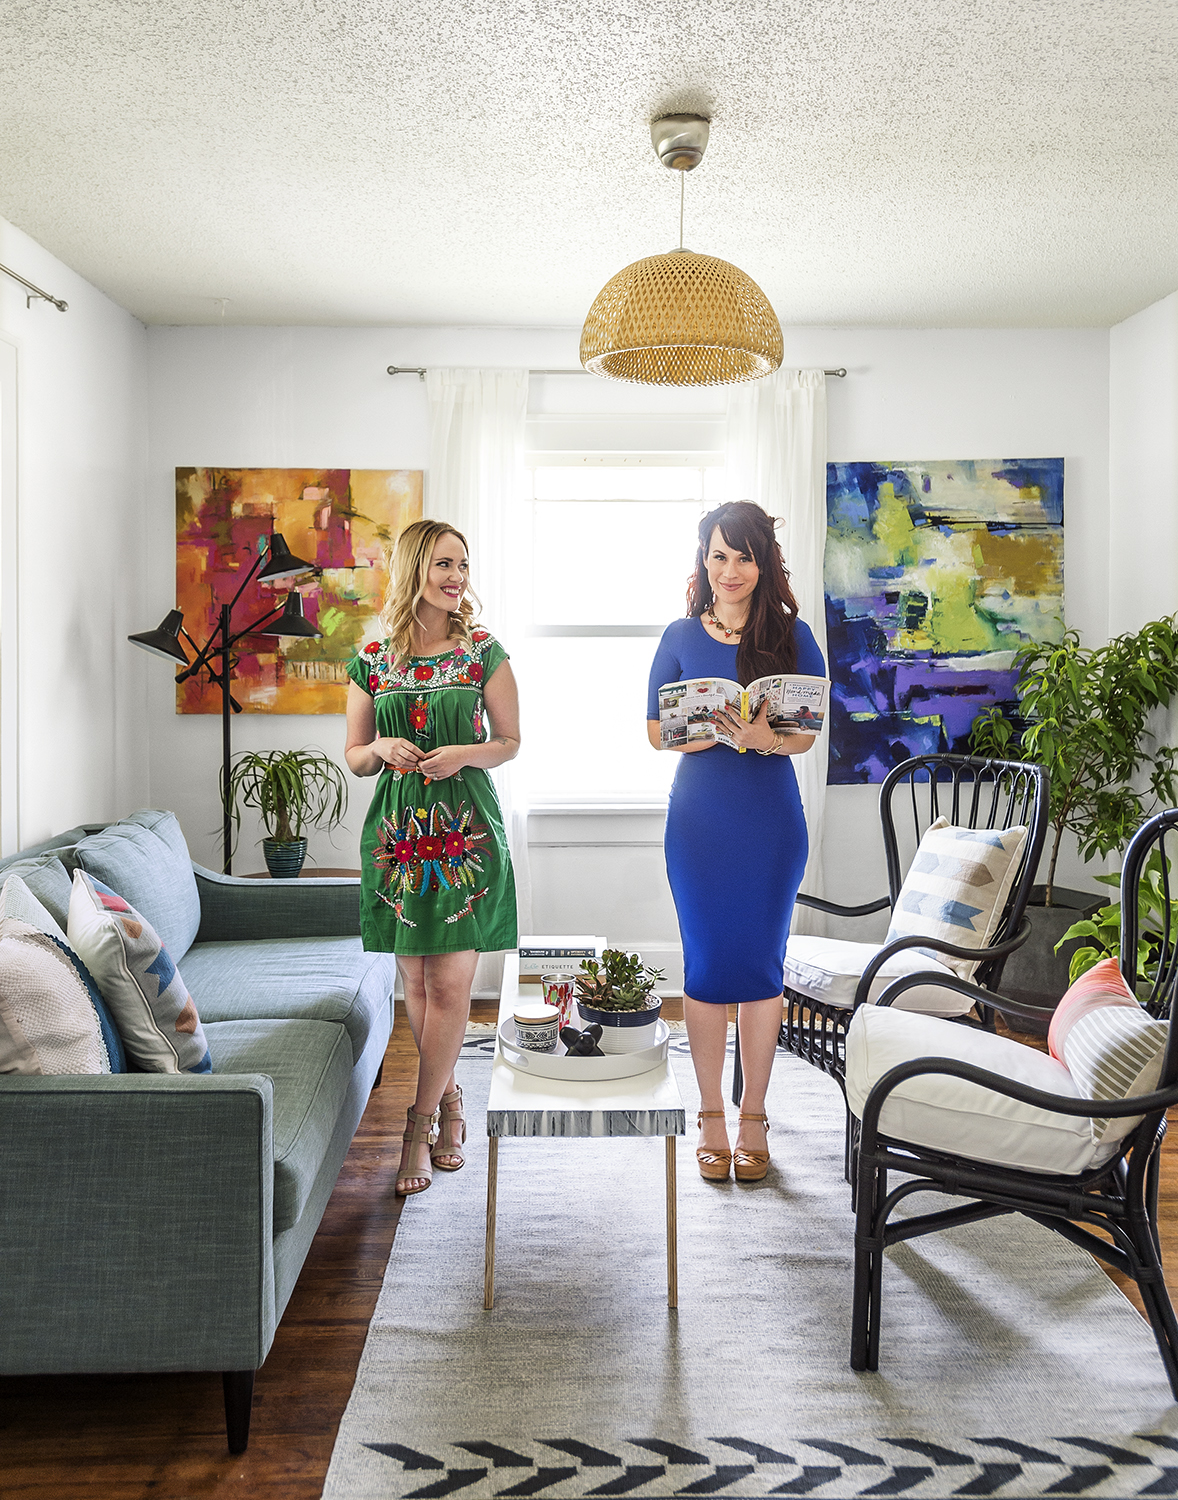 Home for Good: Emma Chapman and Elsie Larson